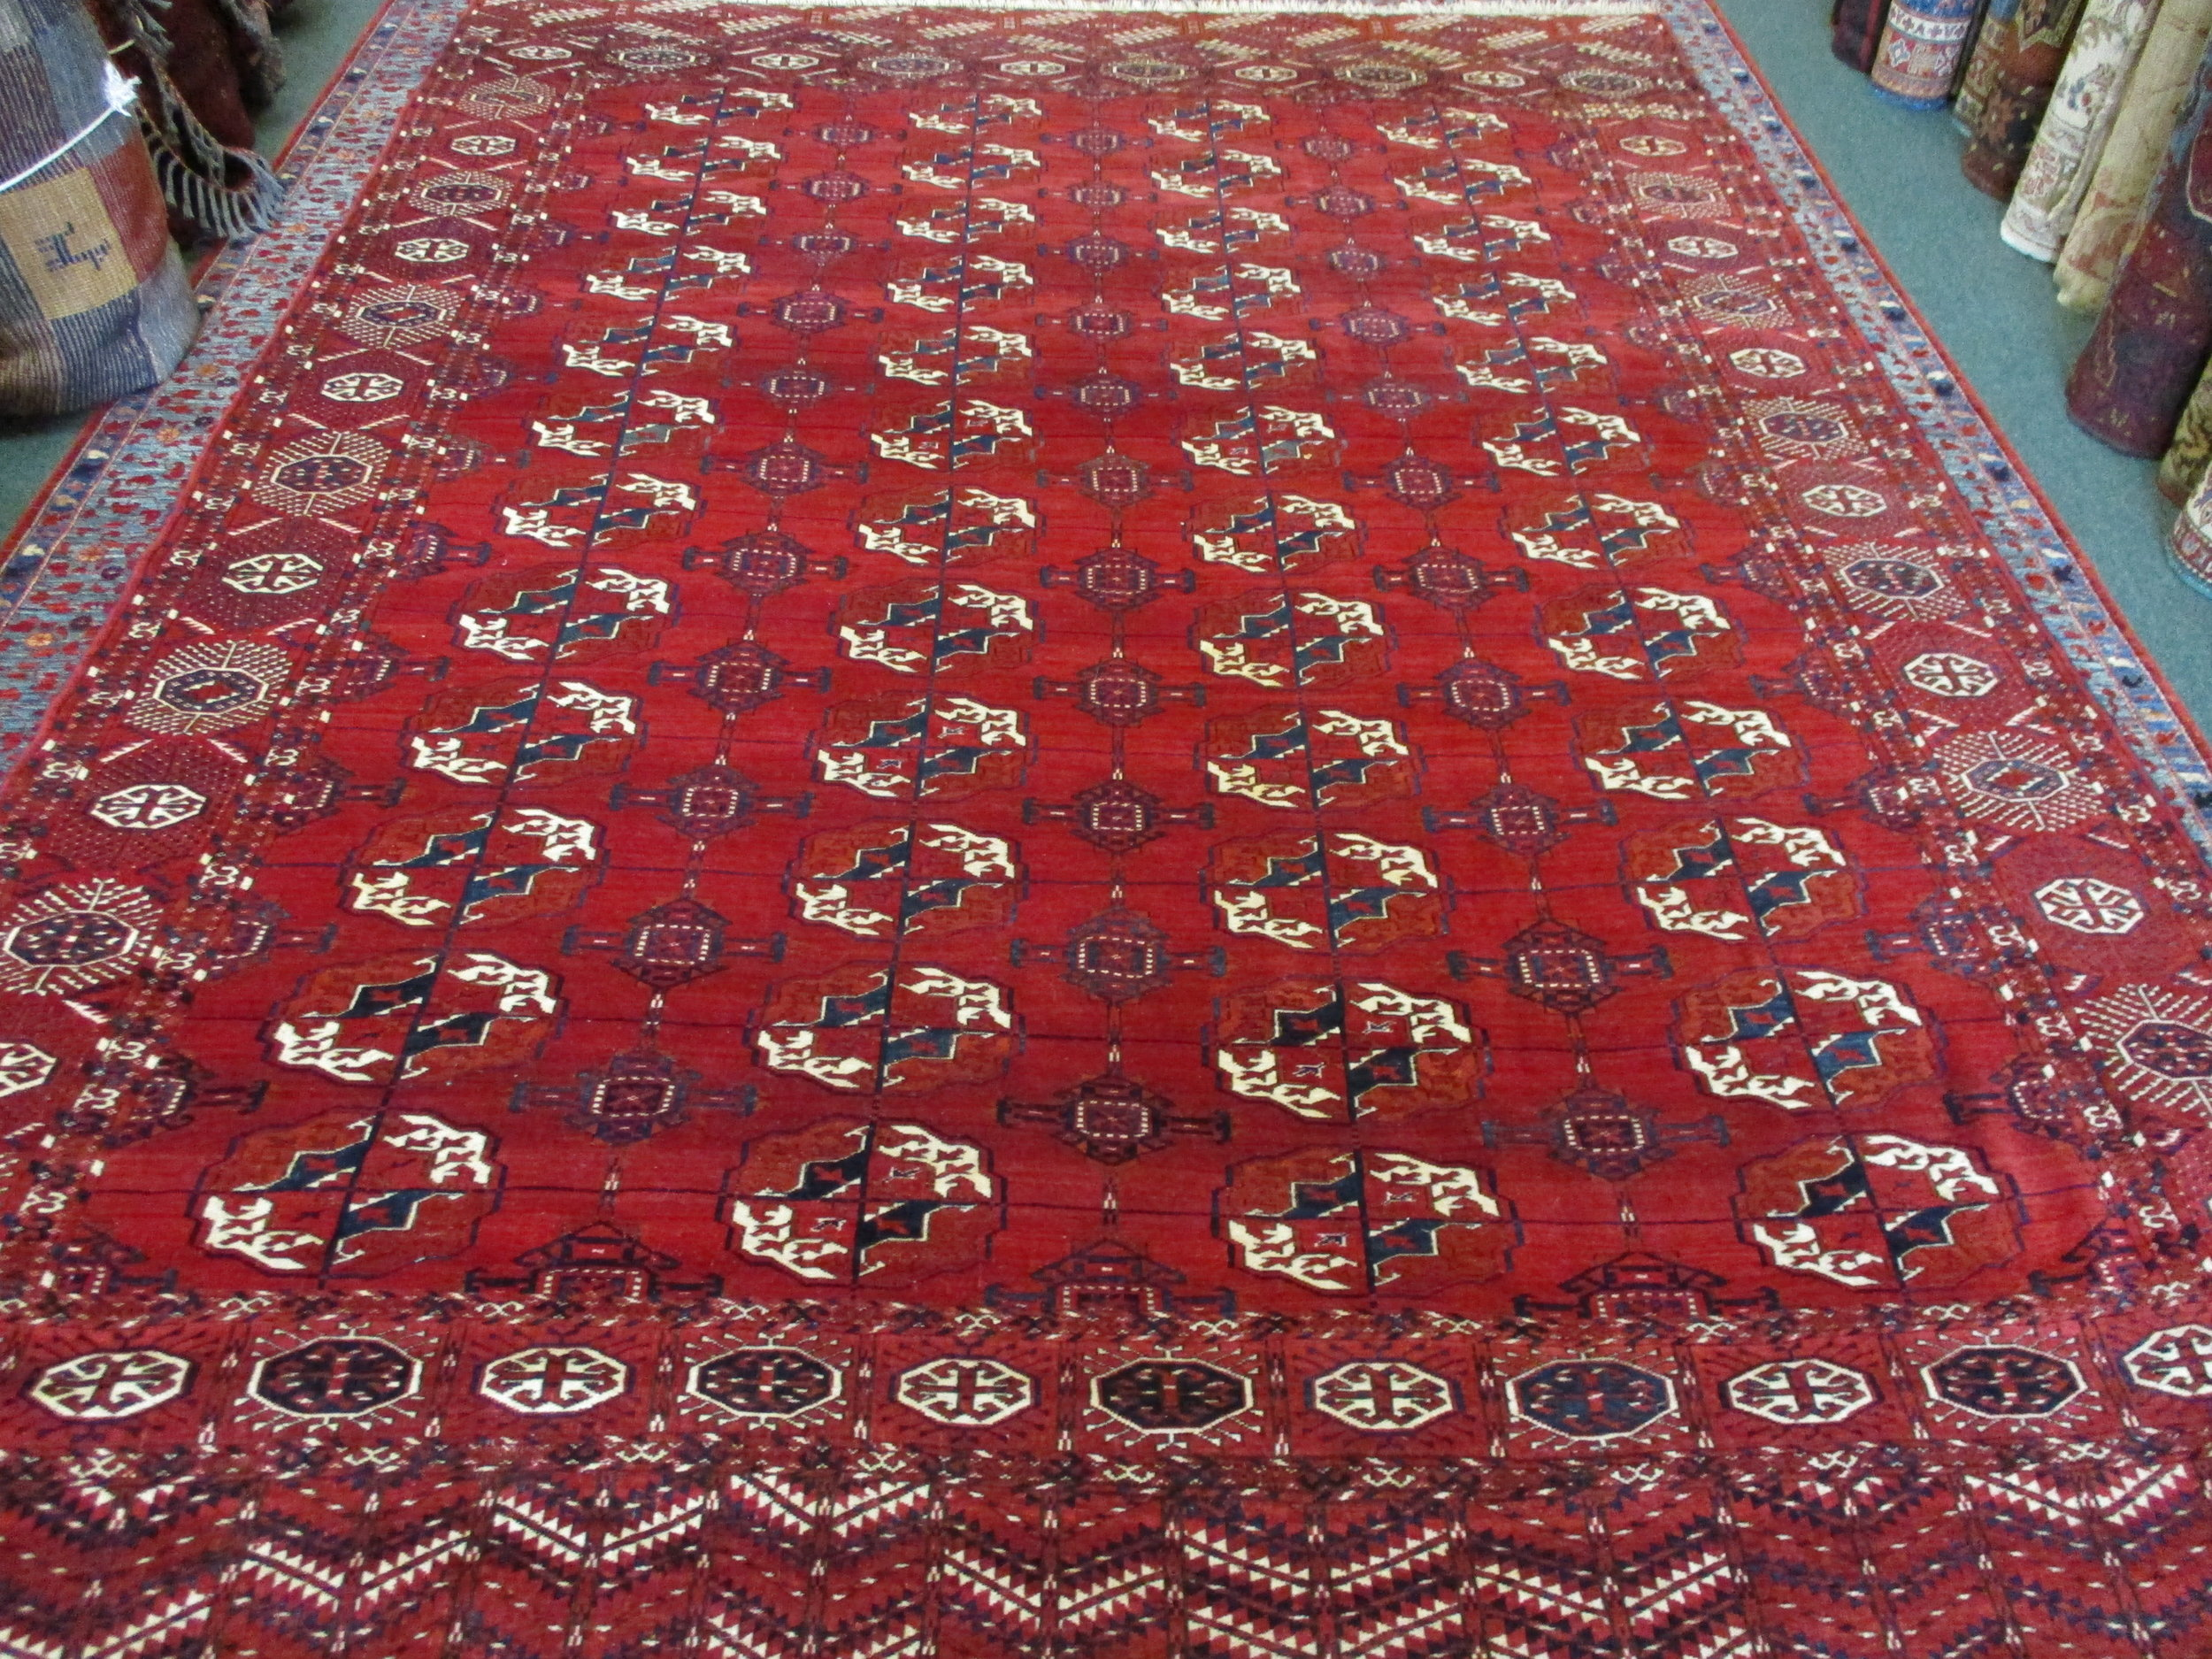 7 x 10 Stunning Antique Turkoman Rug. Excellent condition. 1st Q 20th Century.